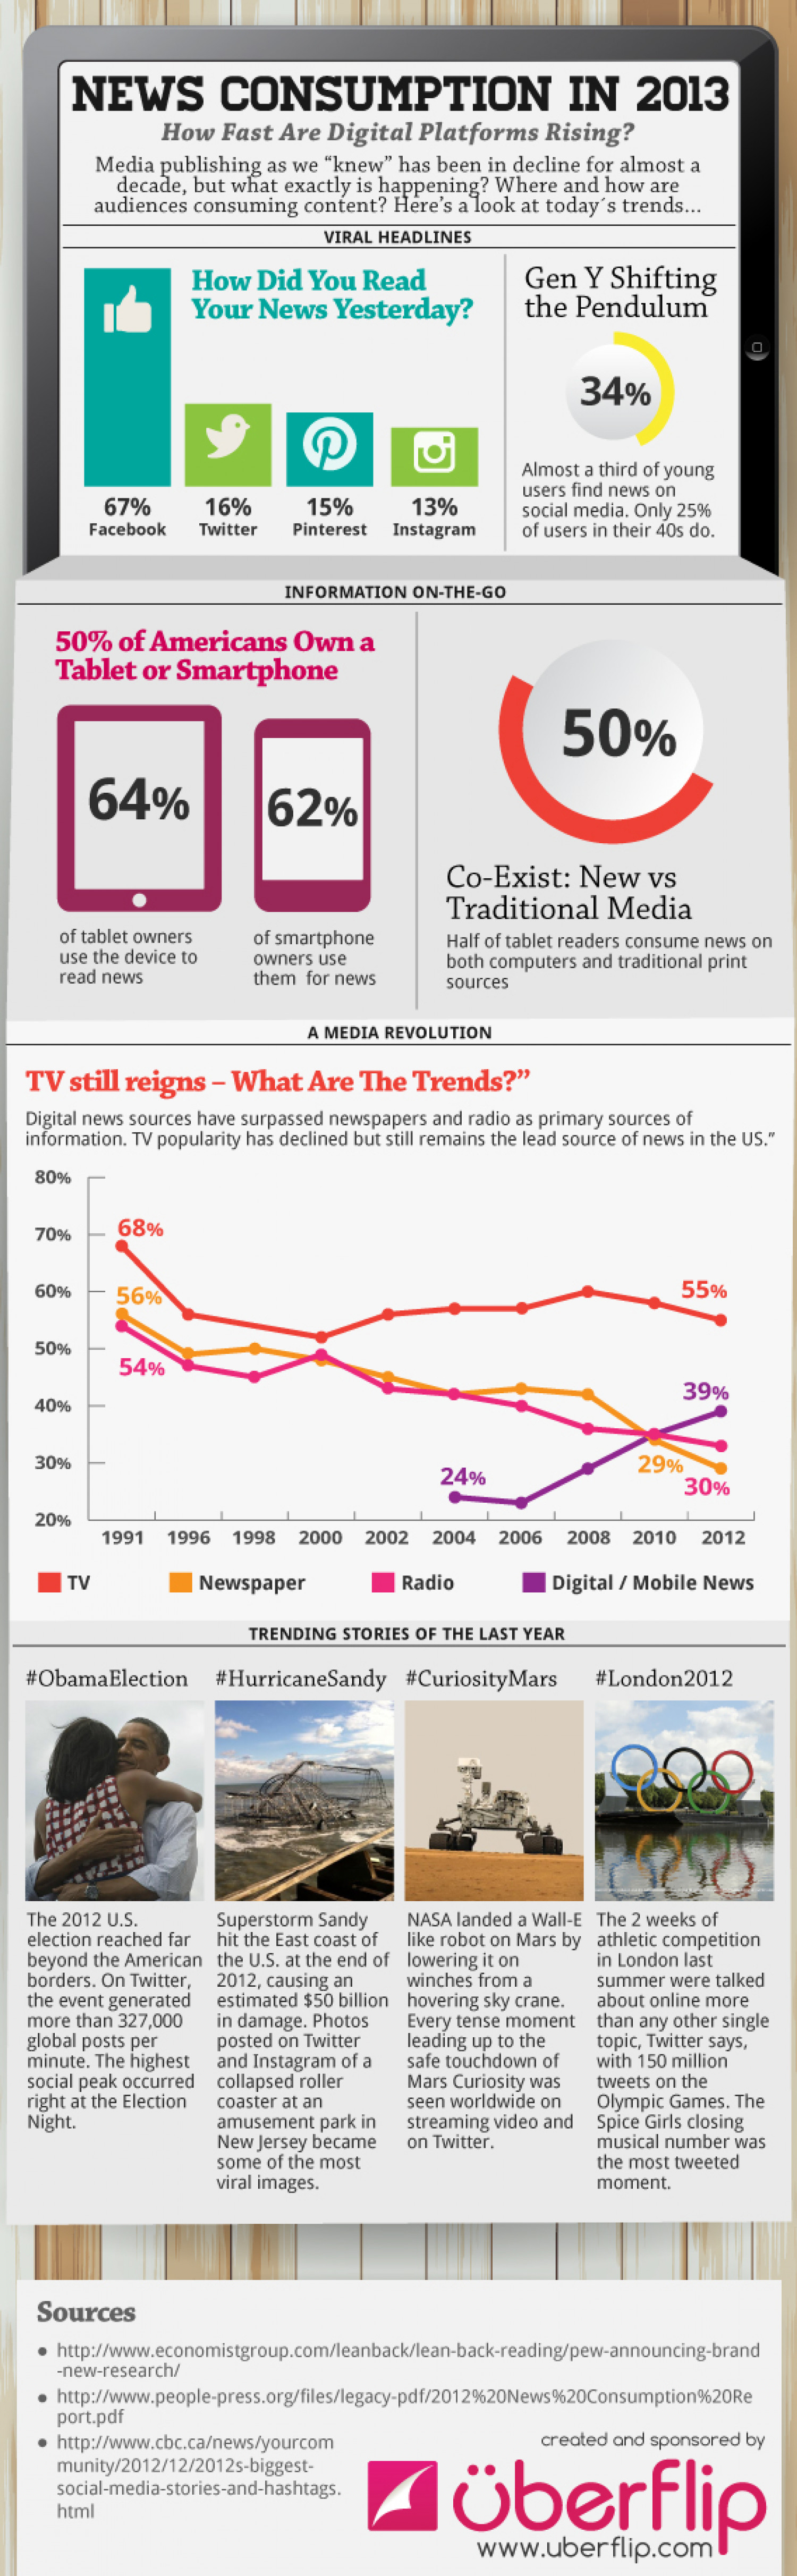 How Do Americans Get Their News in 2013? Infographic